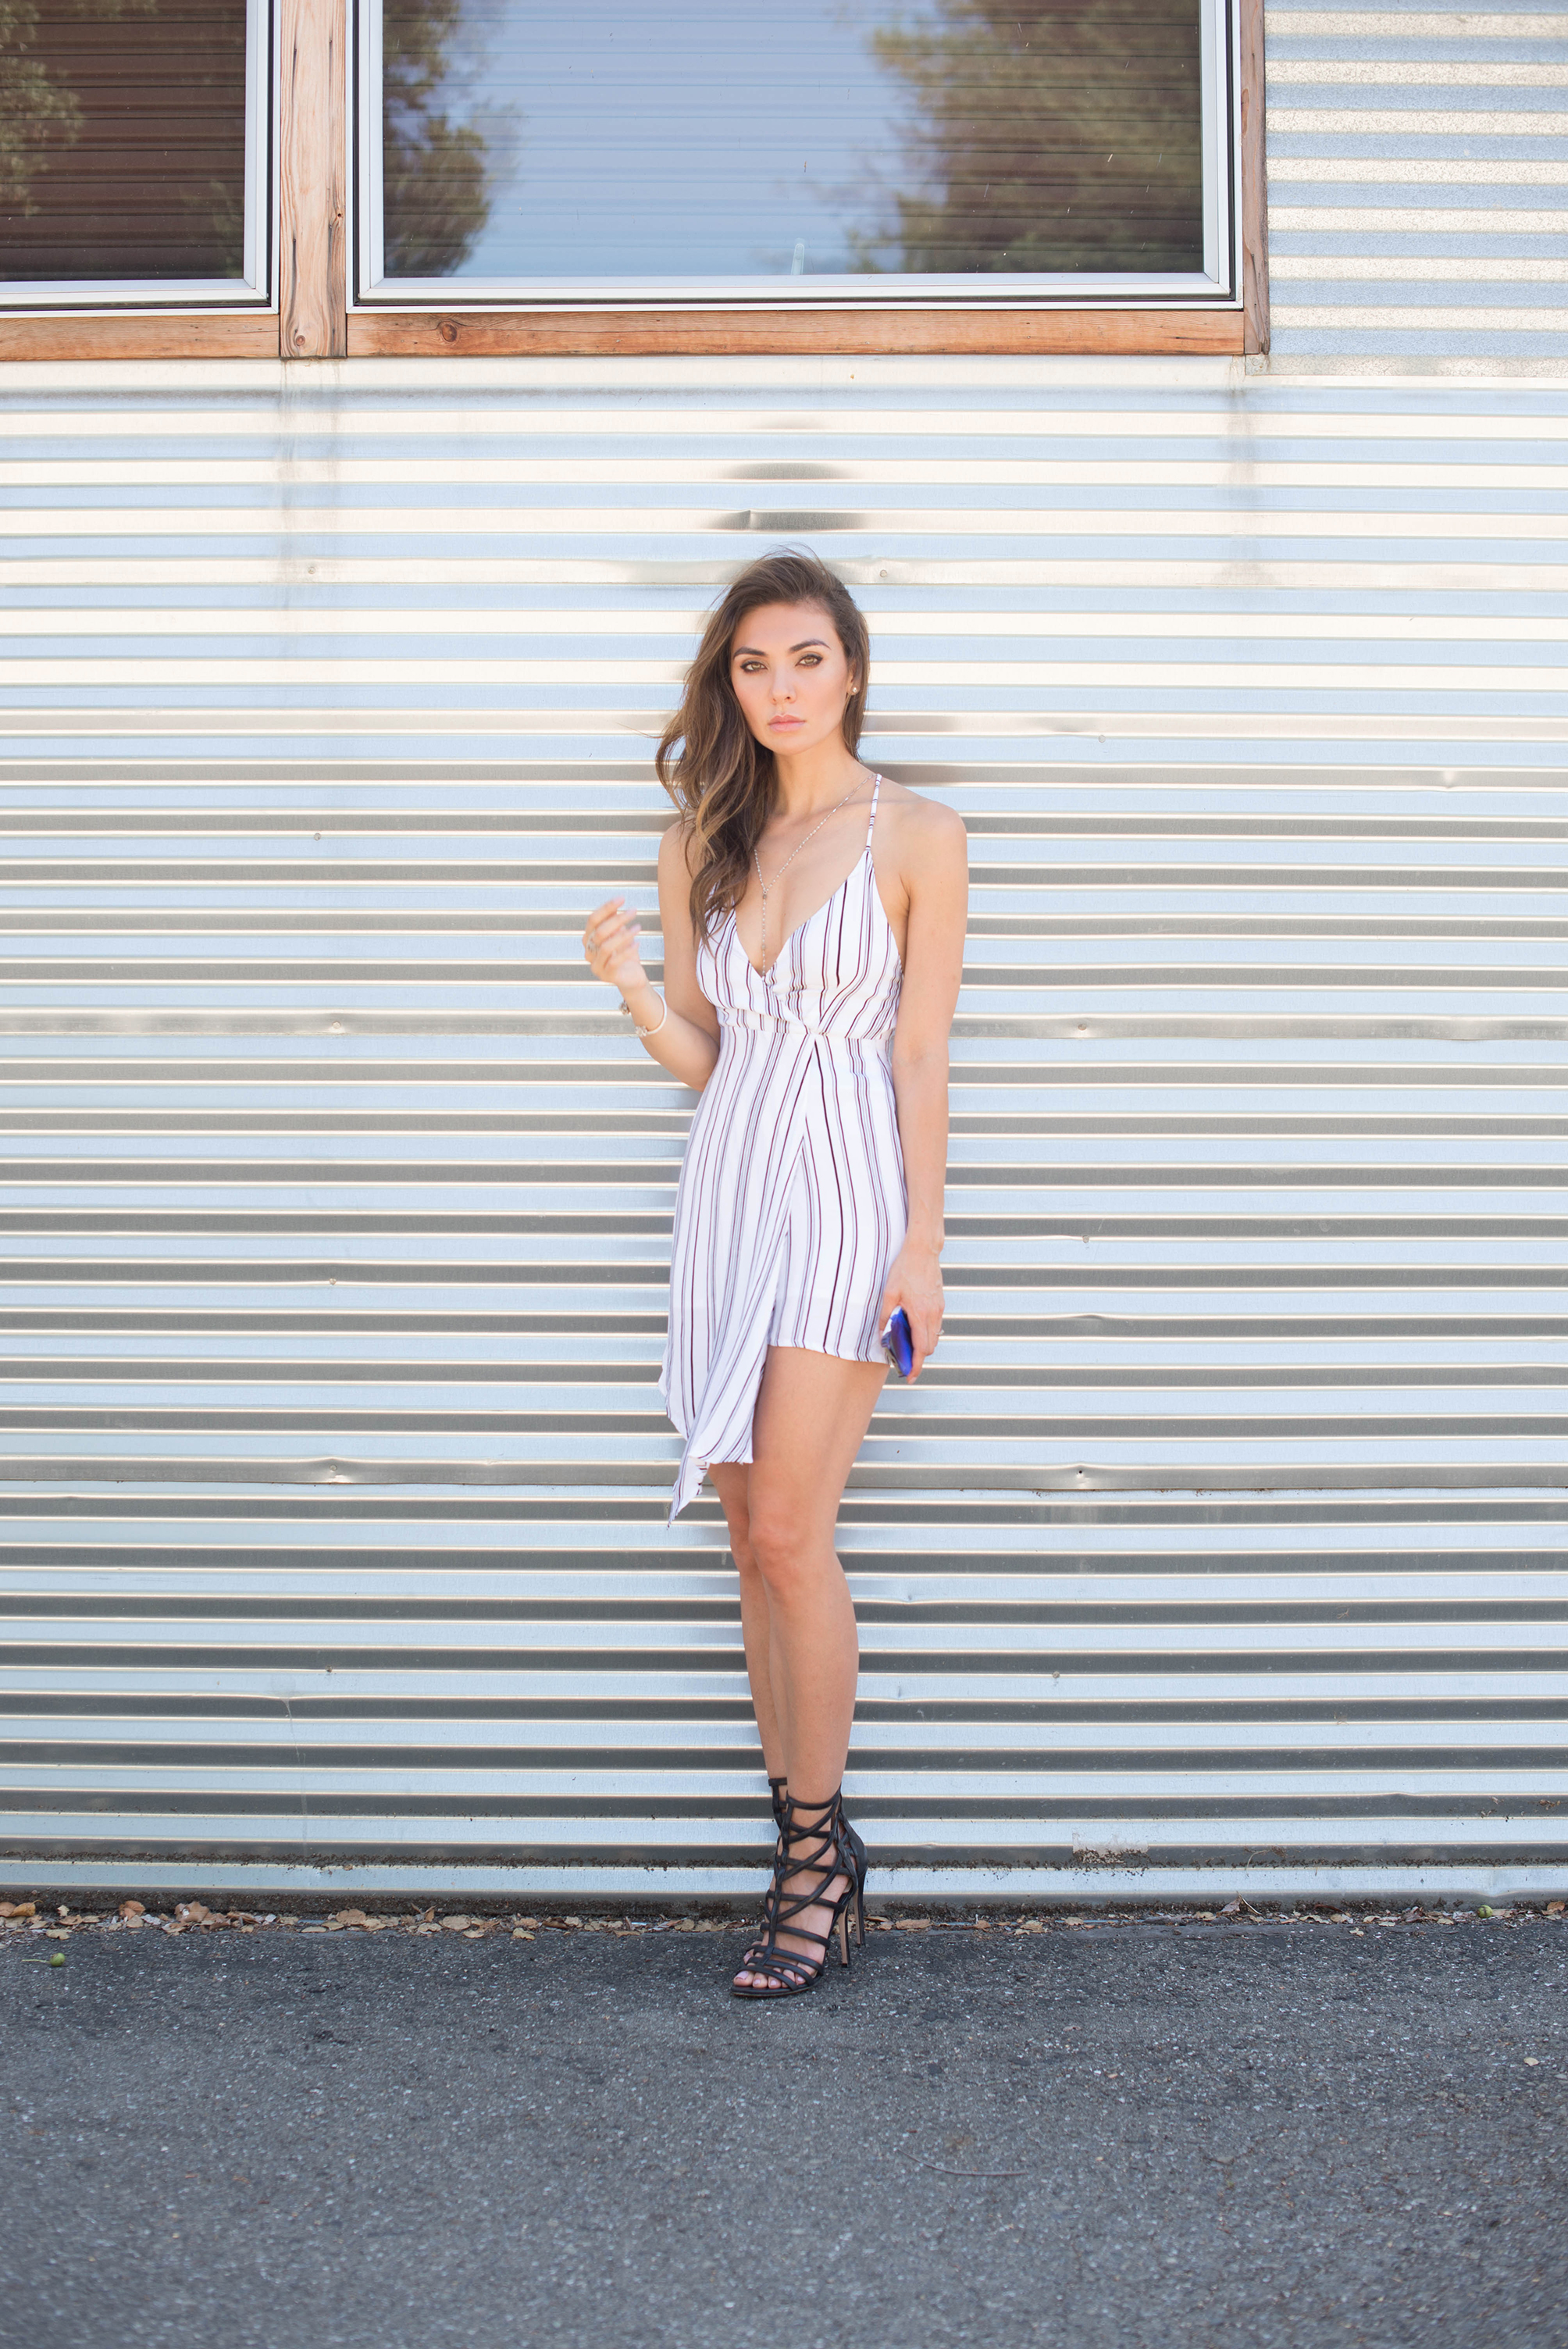 Asymmetric striped dress and strappy heels